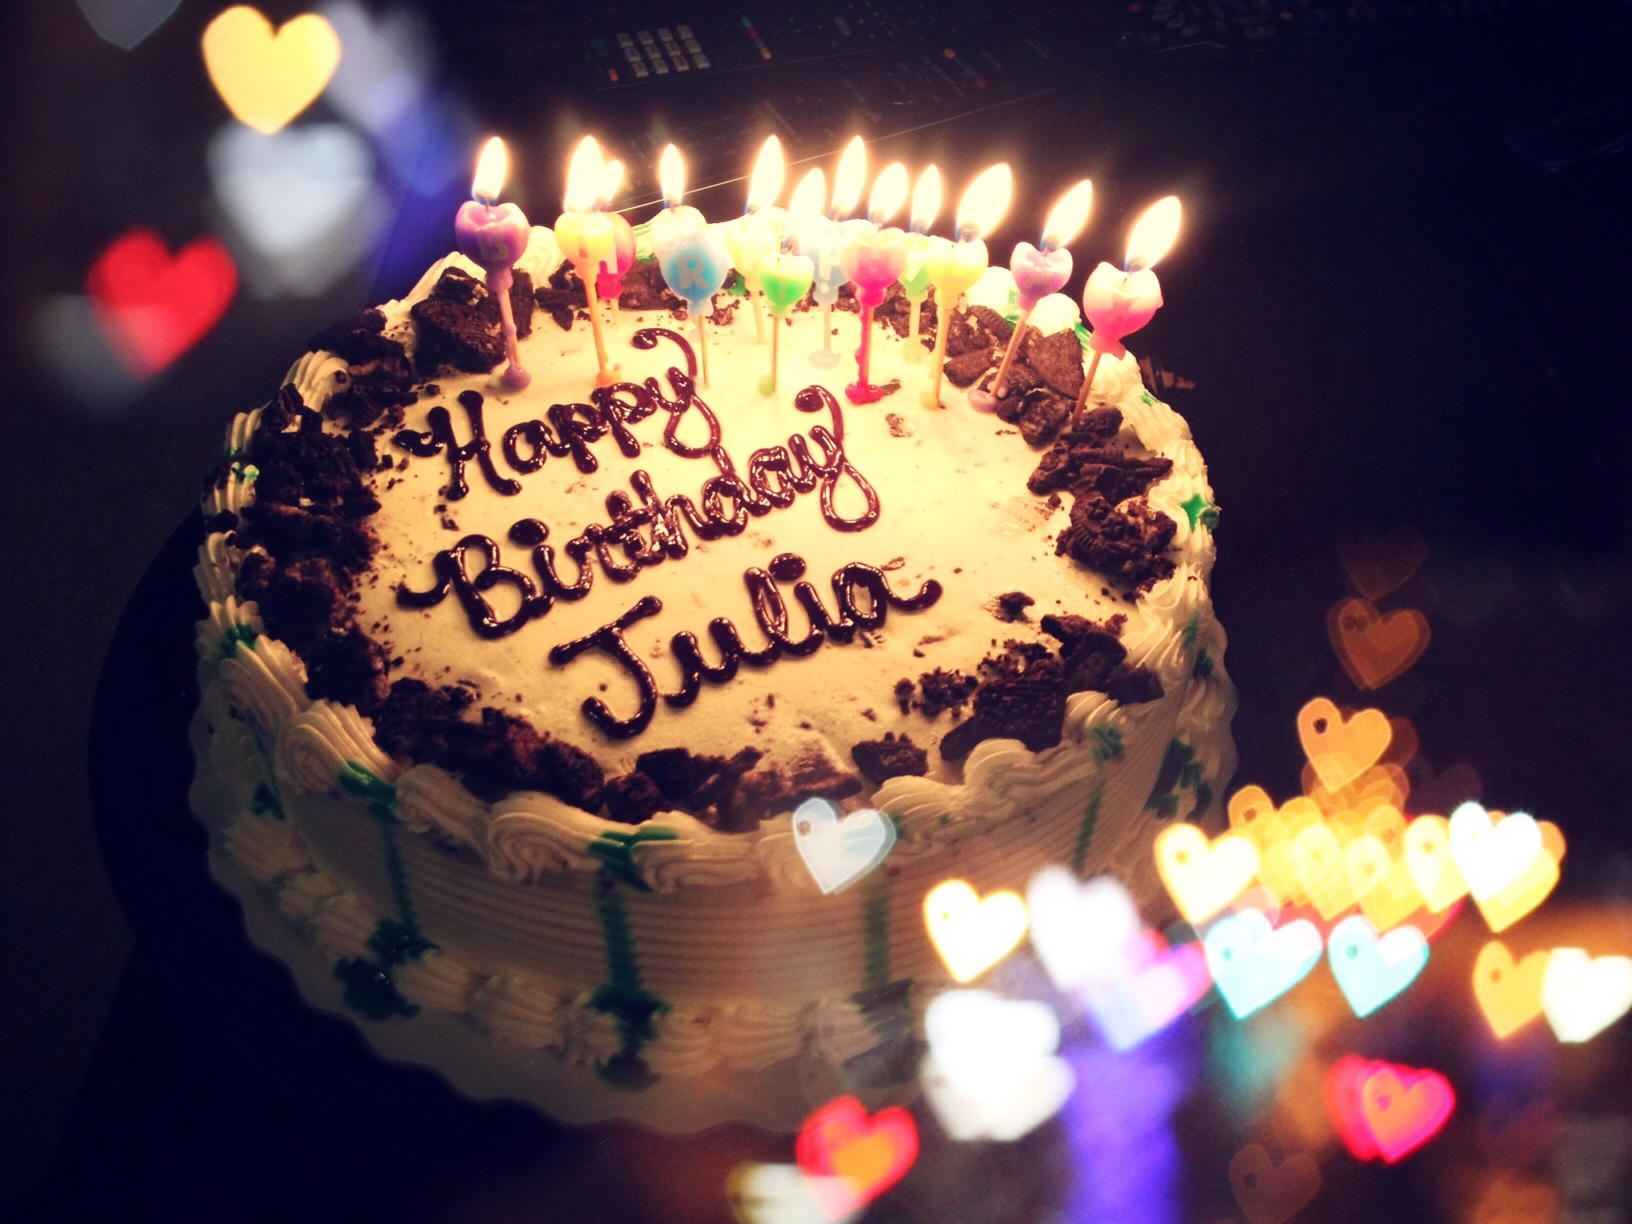 Julia's birthday